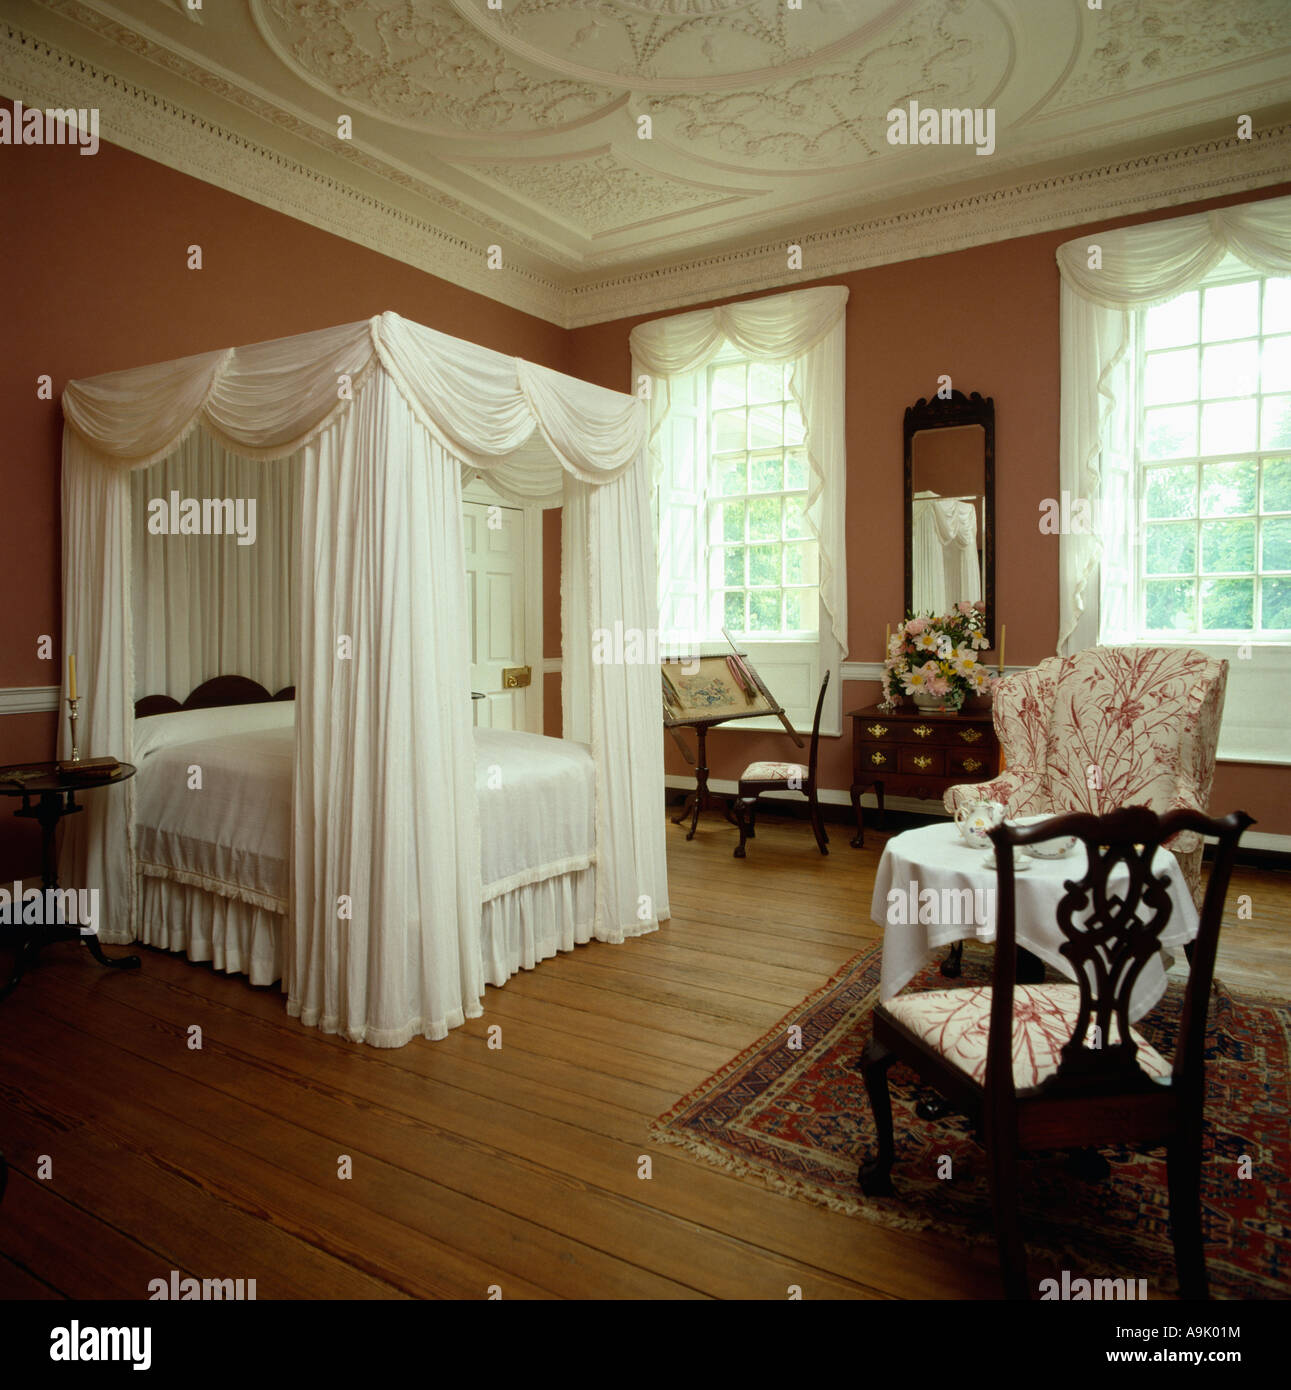 White Wooden Four Poster Bed Part - 49: Four-poster Bed With White Drapes And Linen In Terracotta Bedroom With Tall  Windows And Polished Wood Floor